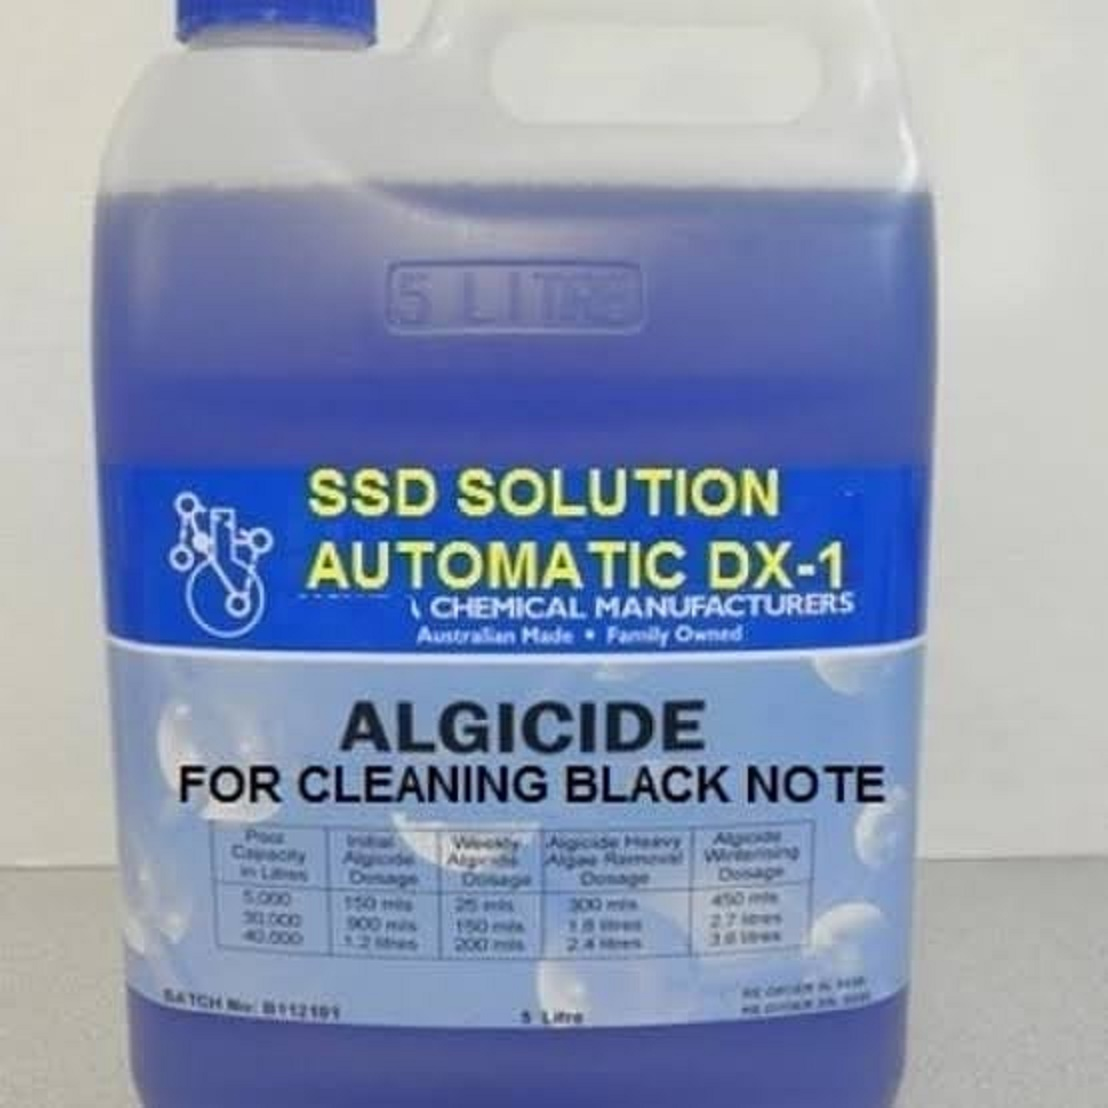 BUY SSD CHEMICAL SOLUTION ONLINE